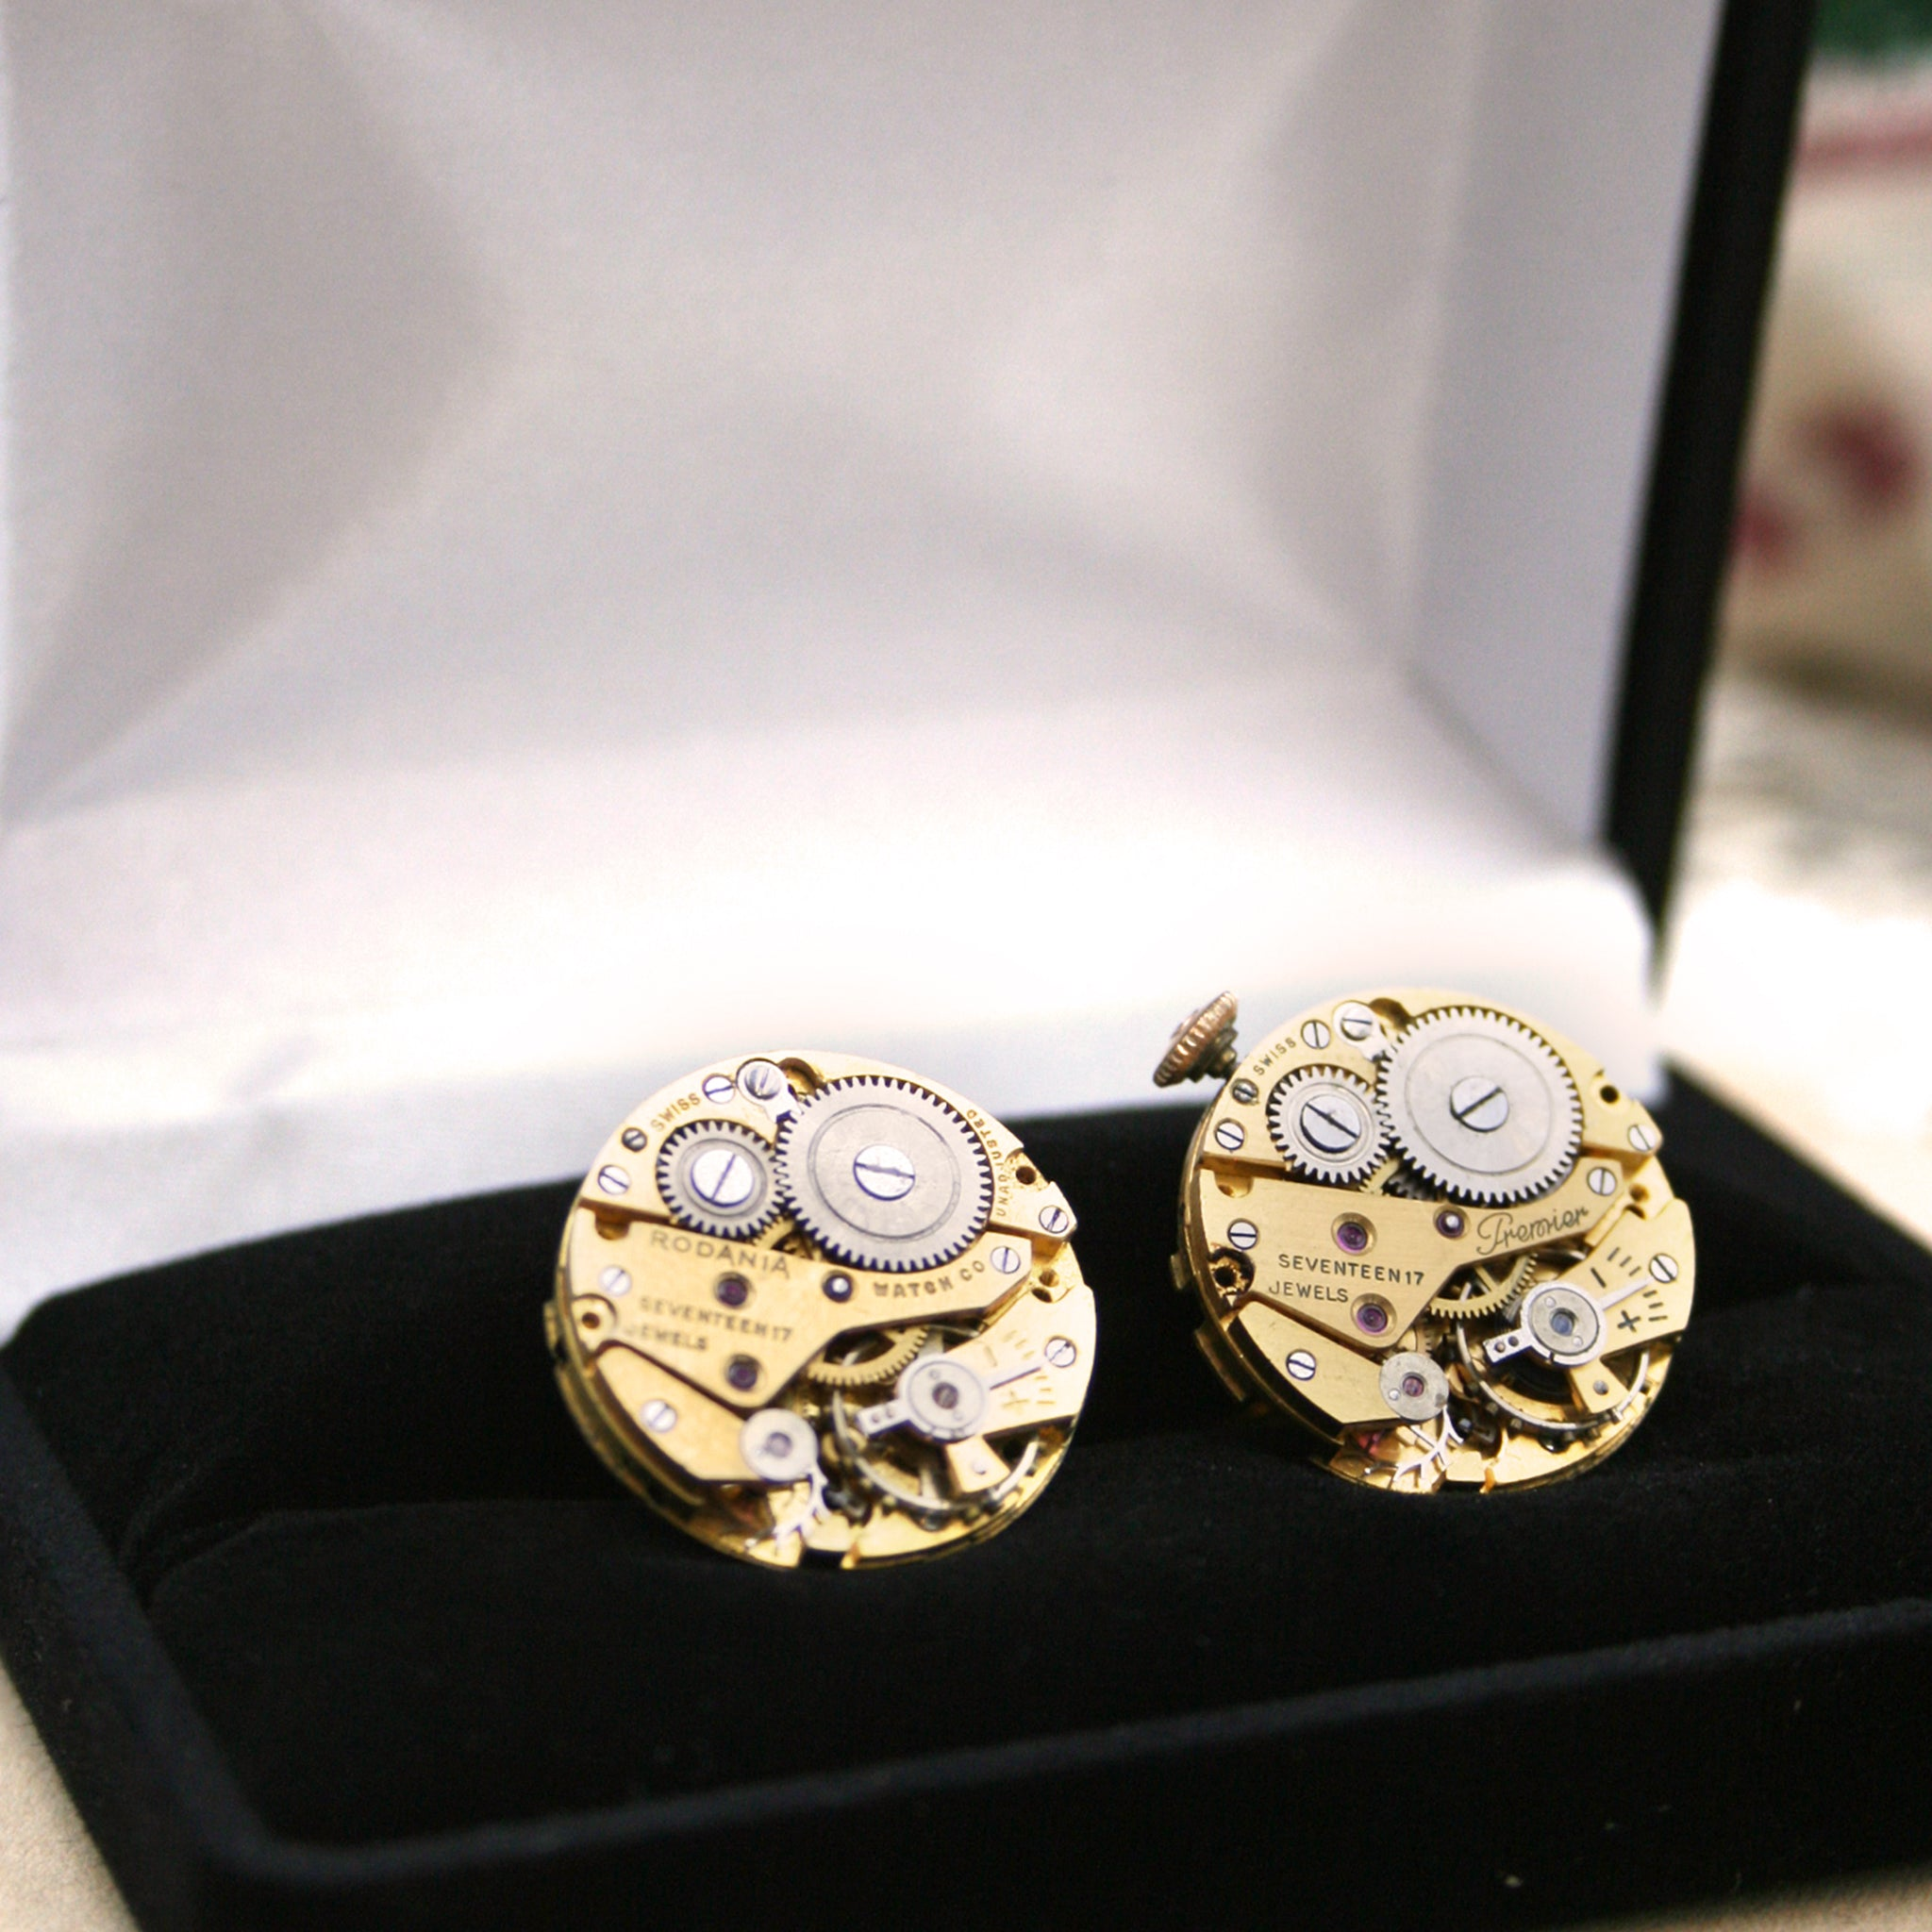 gold steampunk cufflinks featuring antique watch movements in a presentation box